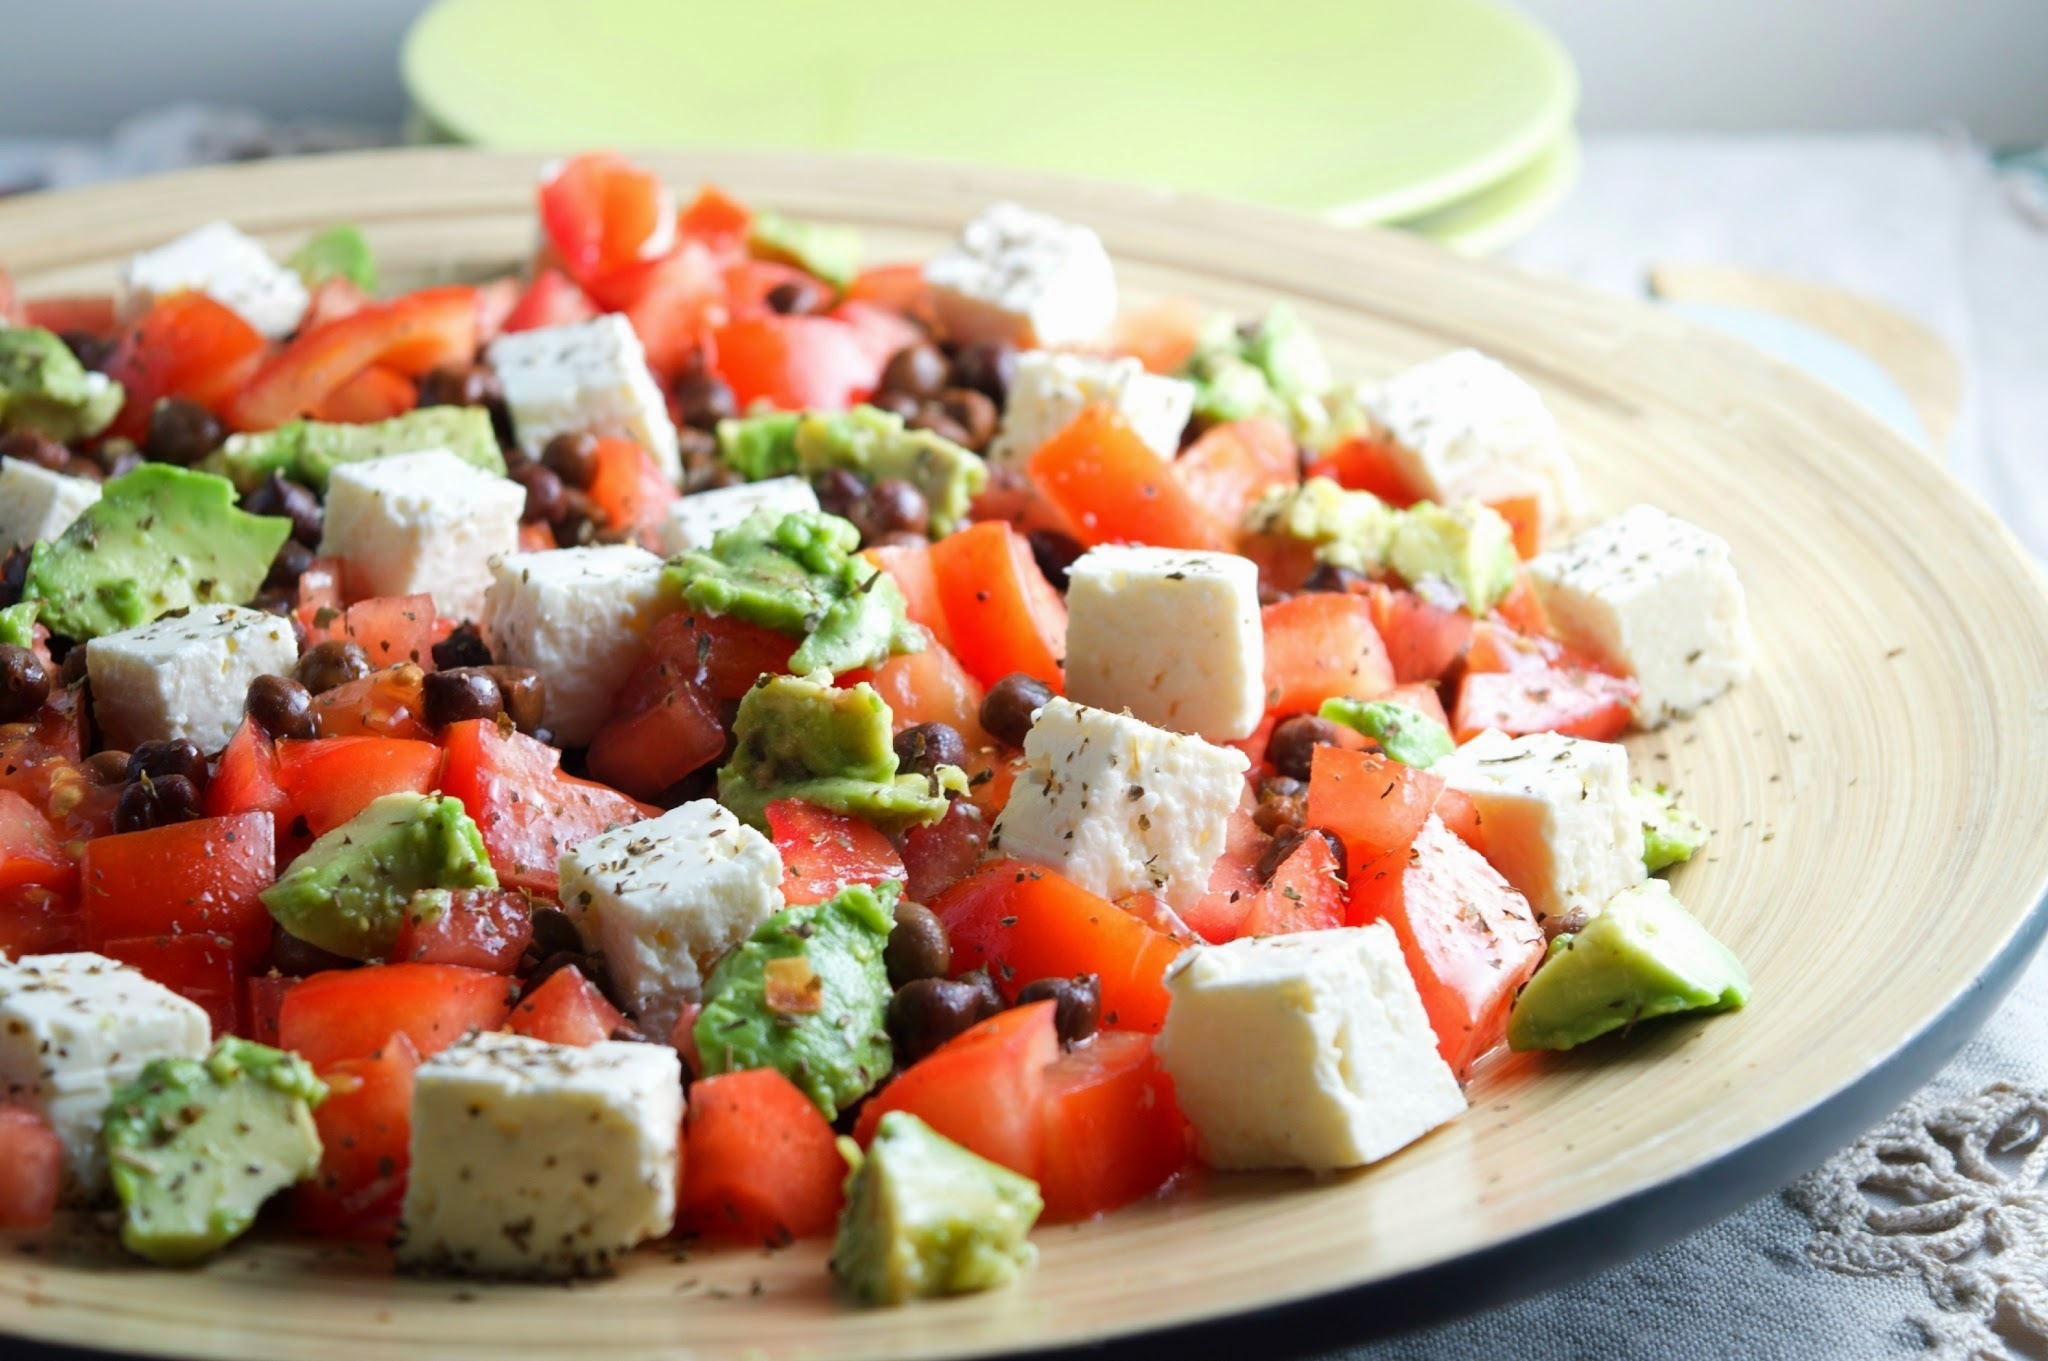 Meatless Monday: Chickpeas, Avocado & Feta Cheese Tomato Salad